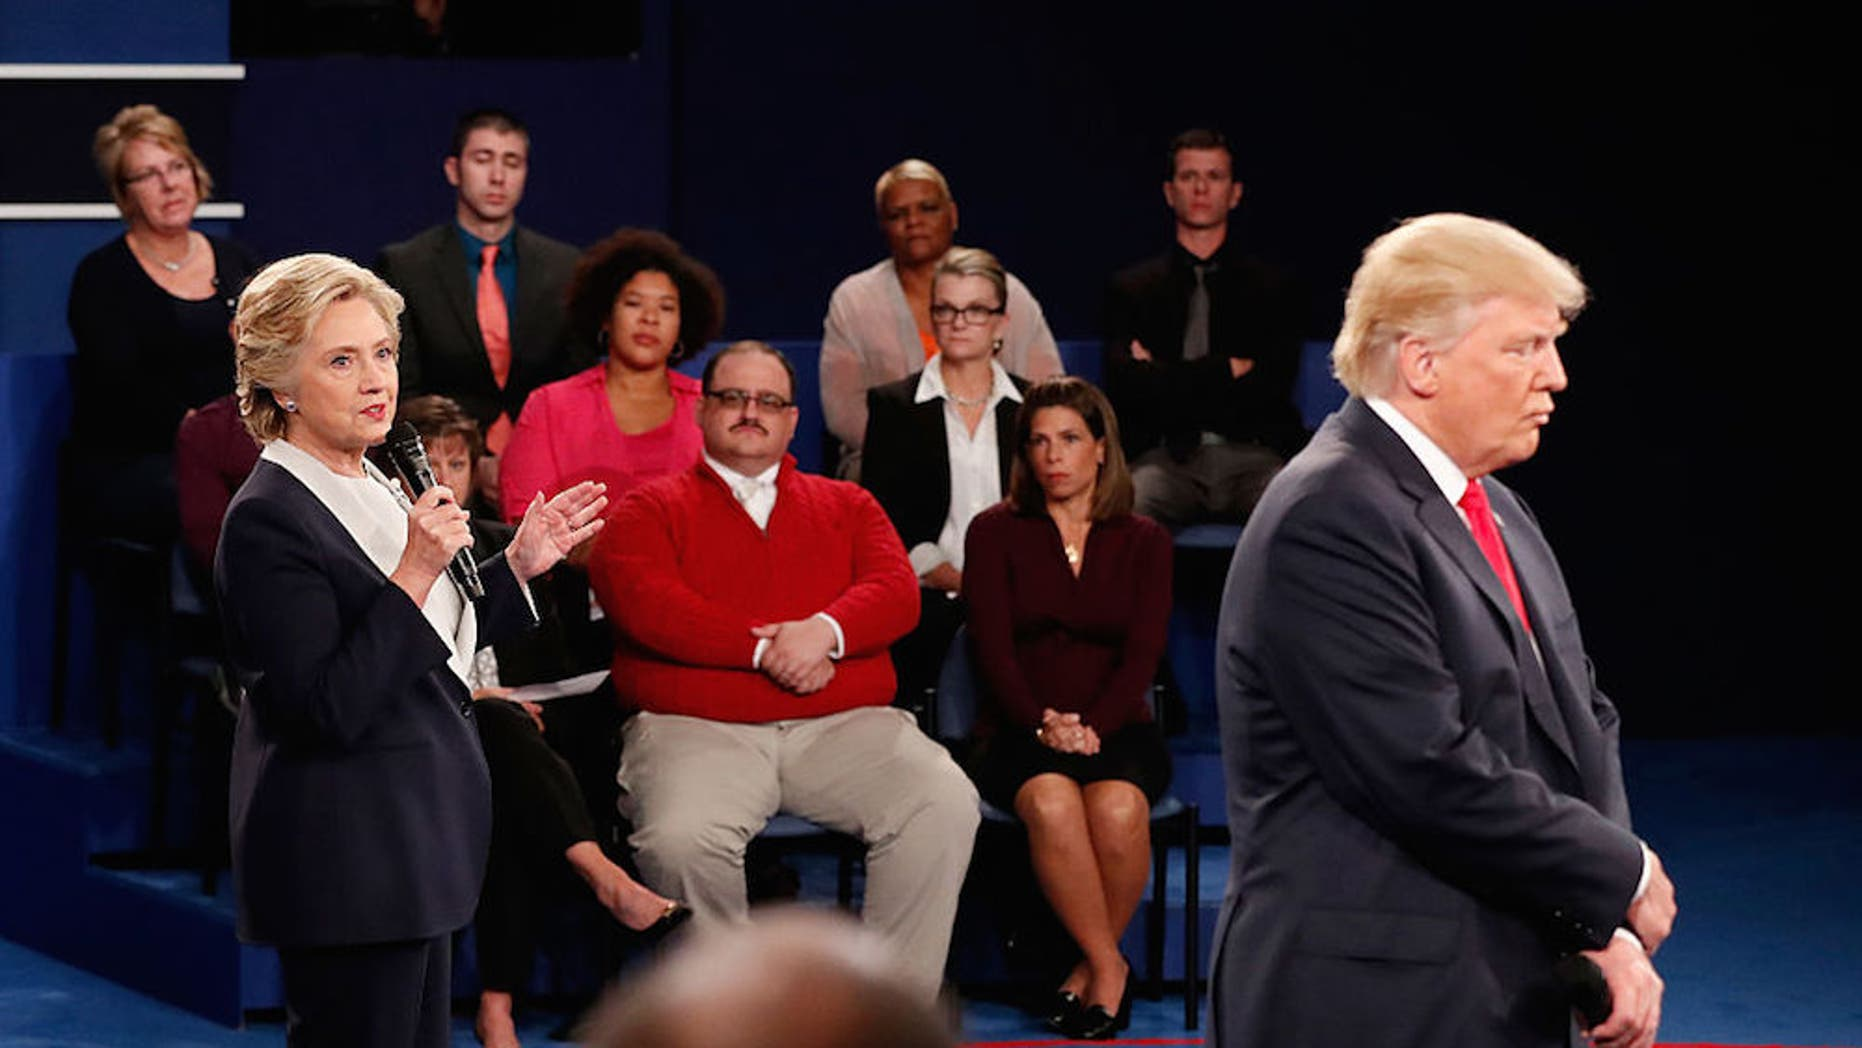 Hillary Clinton (left) and Donald Trump (right) share their positions while Ken Bone (center) listens at the town hall debate on Saturday (Oct. 9).